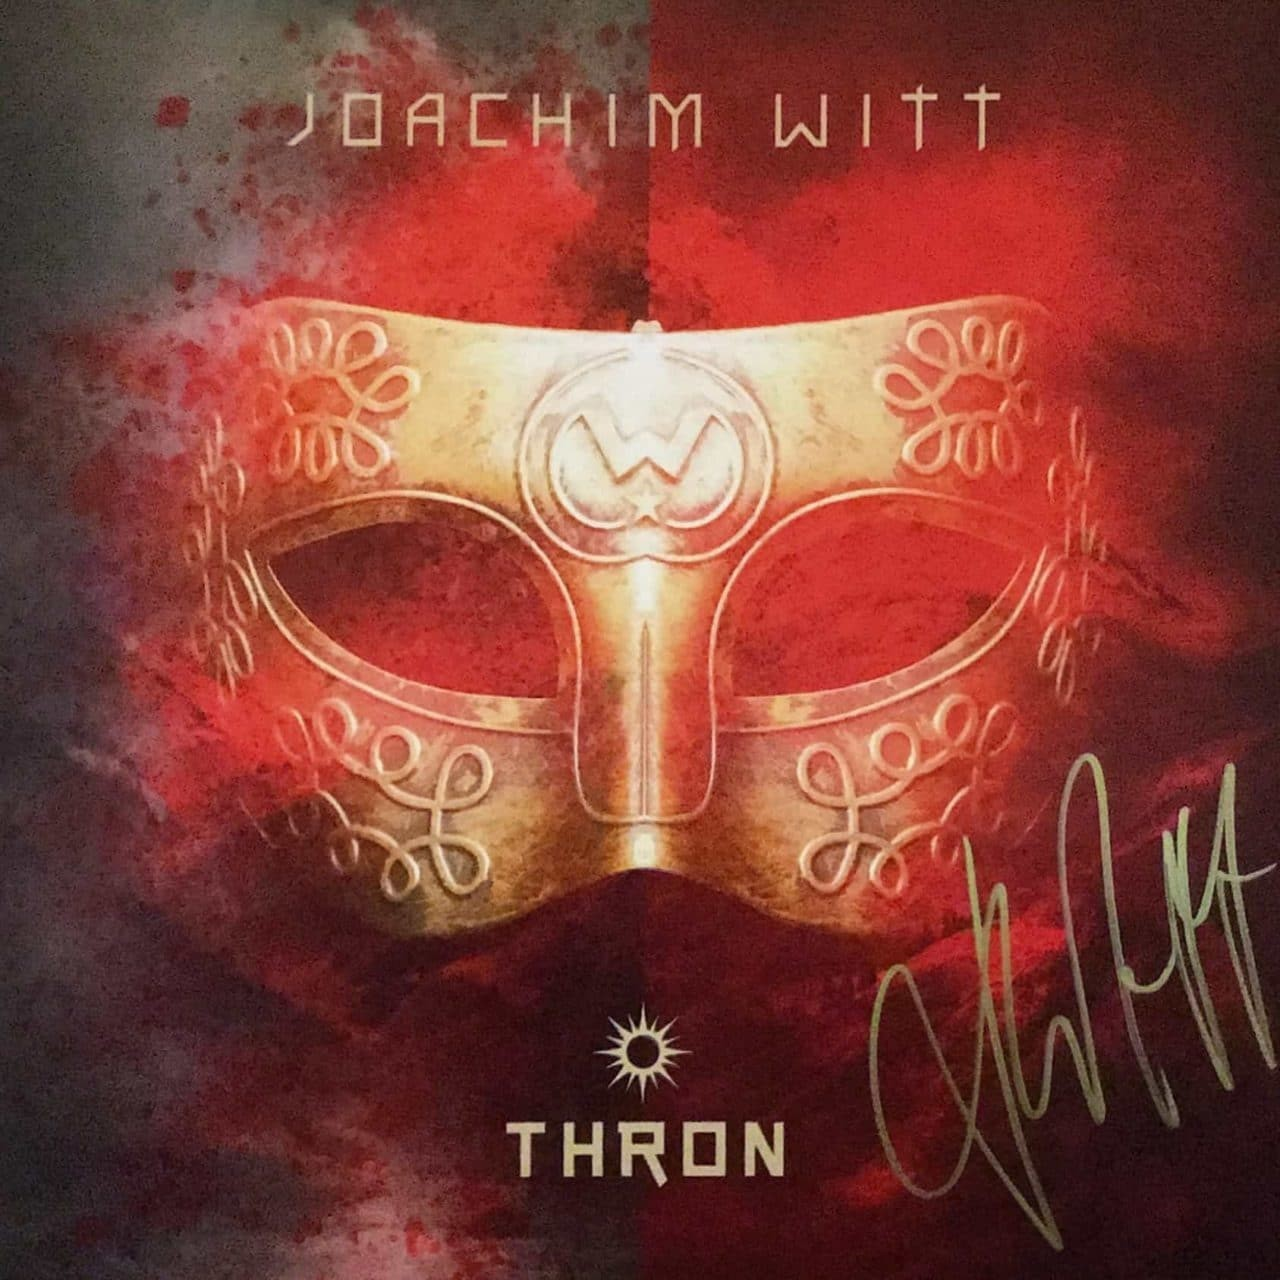 Thron - Joachim Witt - Cover Front